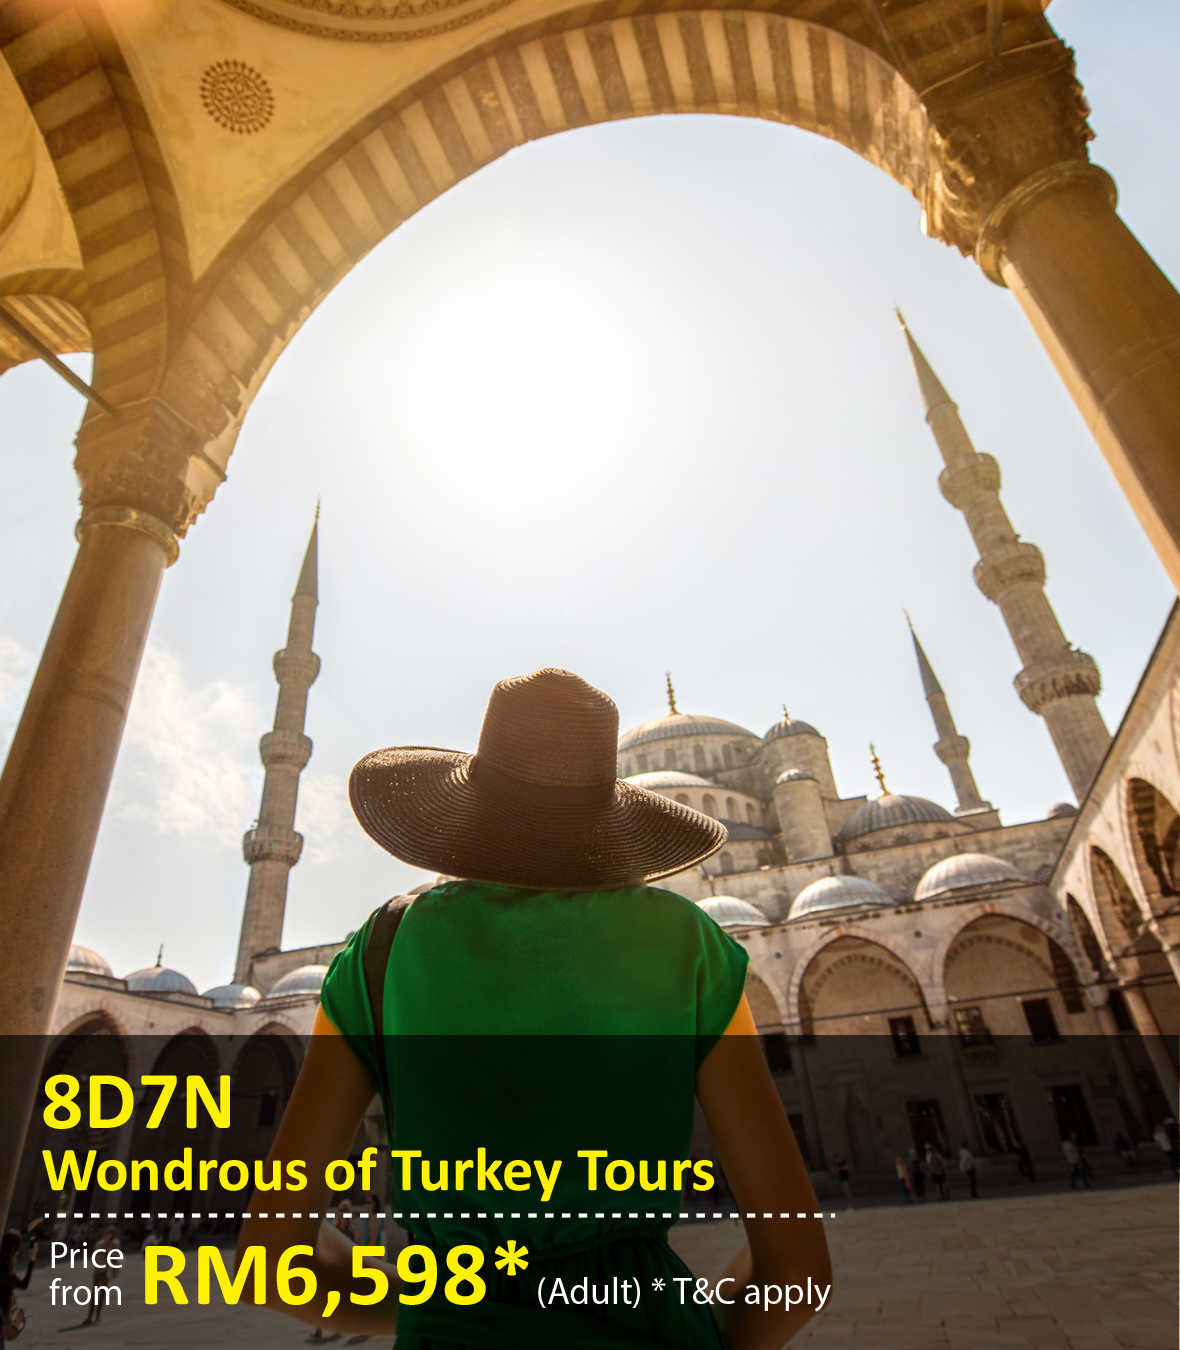 UOB Special Promo Package: 8 Days 7 Nights Turkey Tours